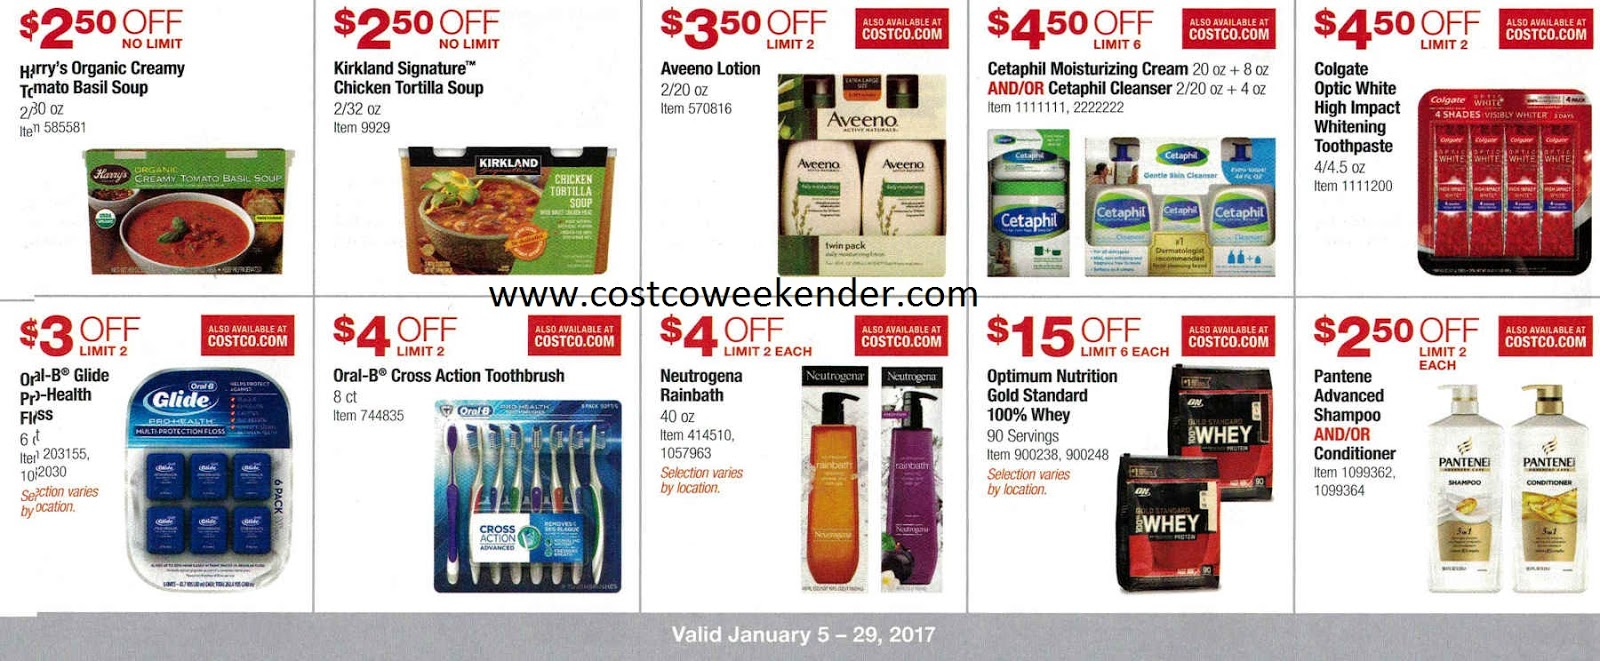 Costco discount coupons tires